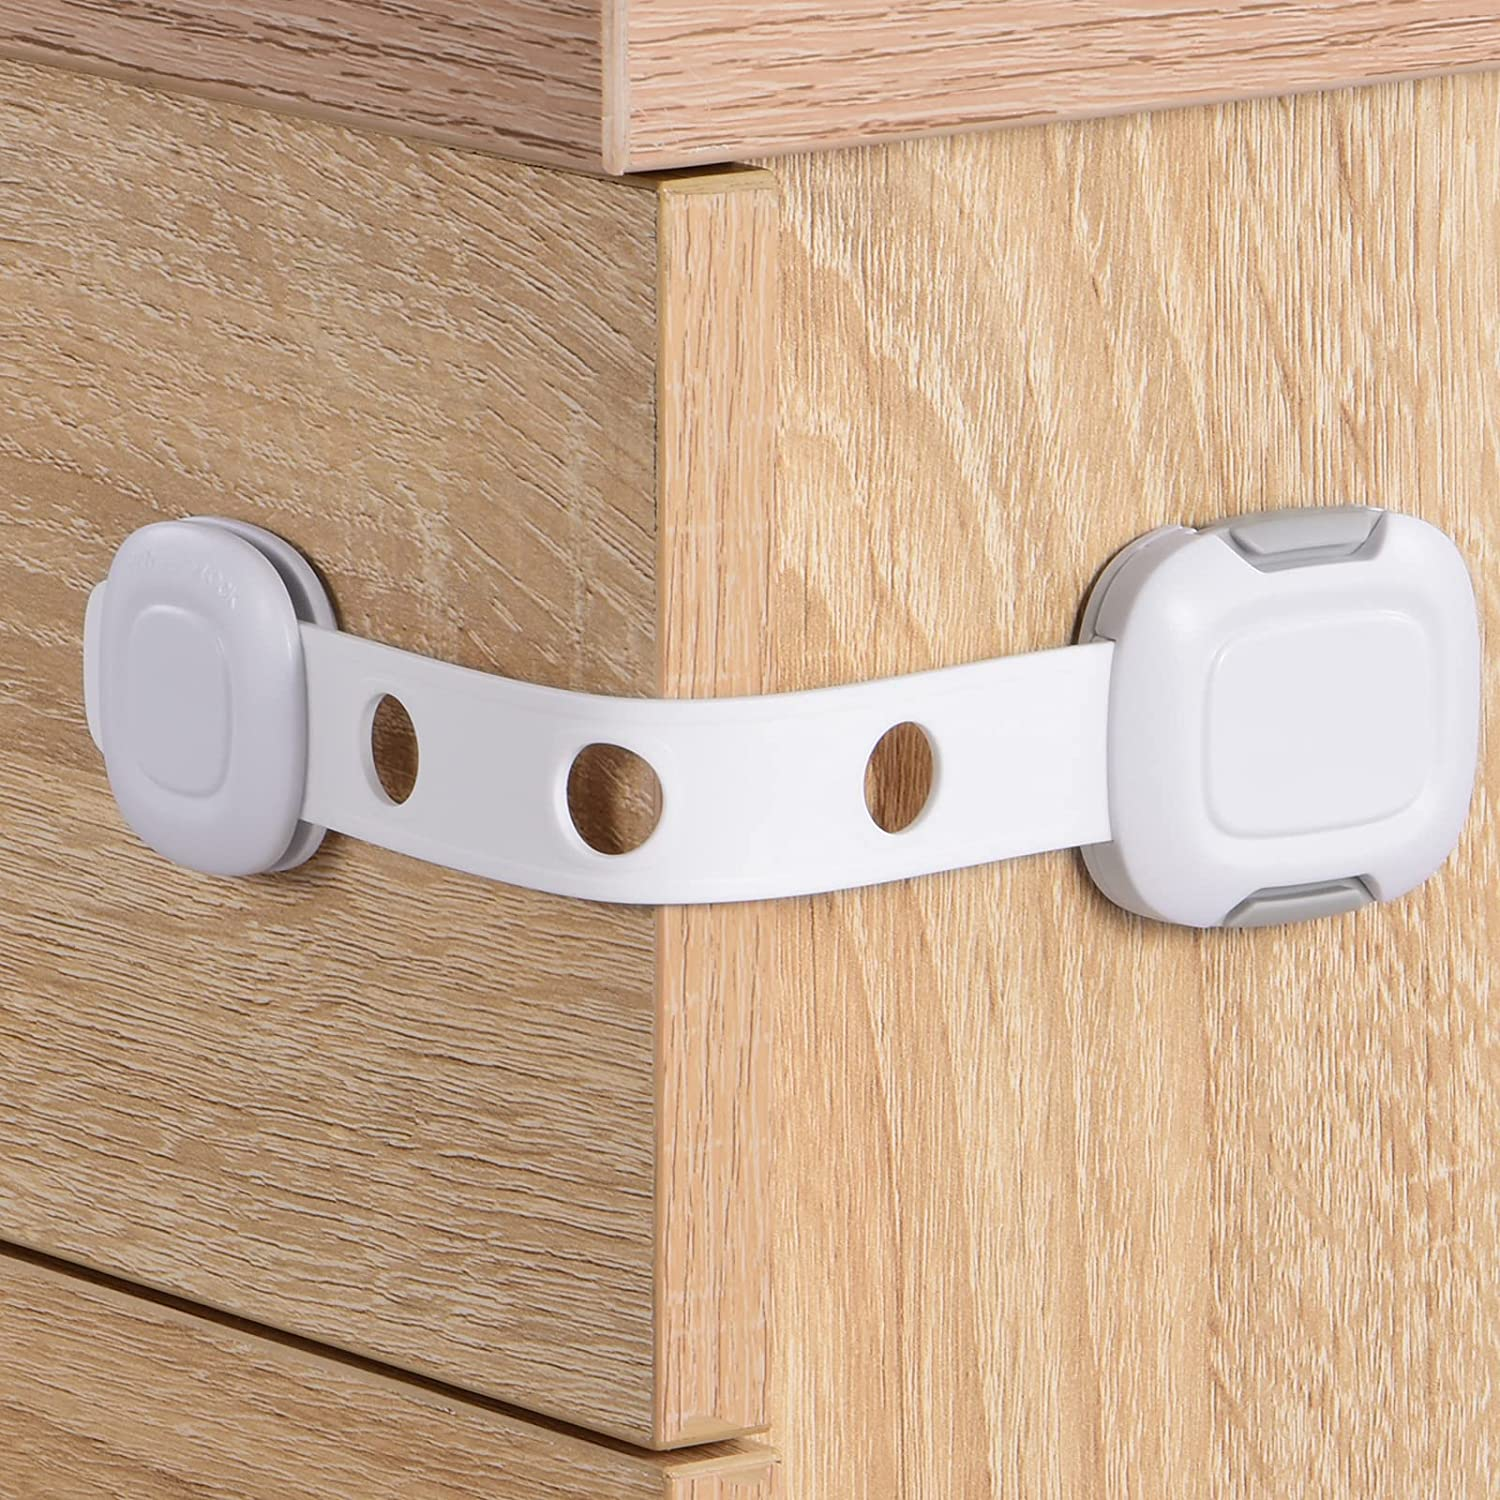 Babelio TAK Cabinet Straps Locks for Babies, Child Proof Safety Locks for Drawers, Baby Proof Latches for Kitchen, Furnitures, Strong Adhesive (2 Pack)